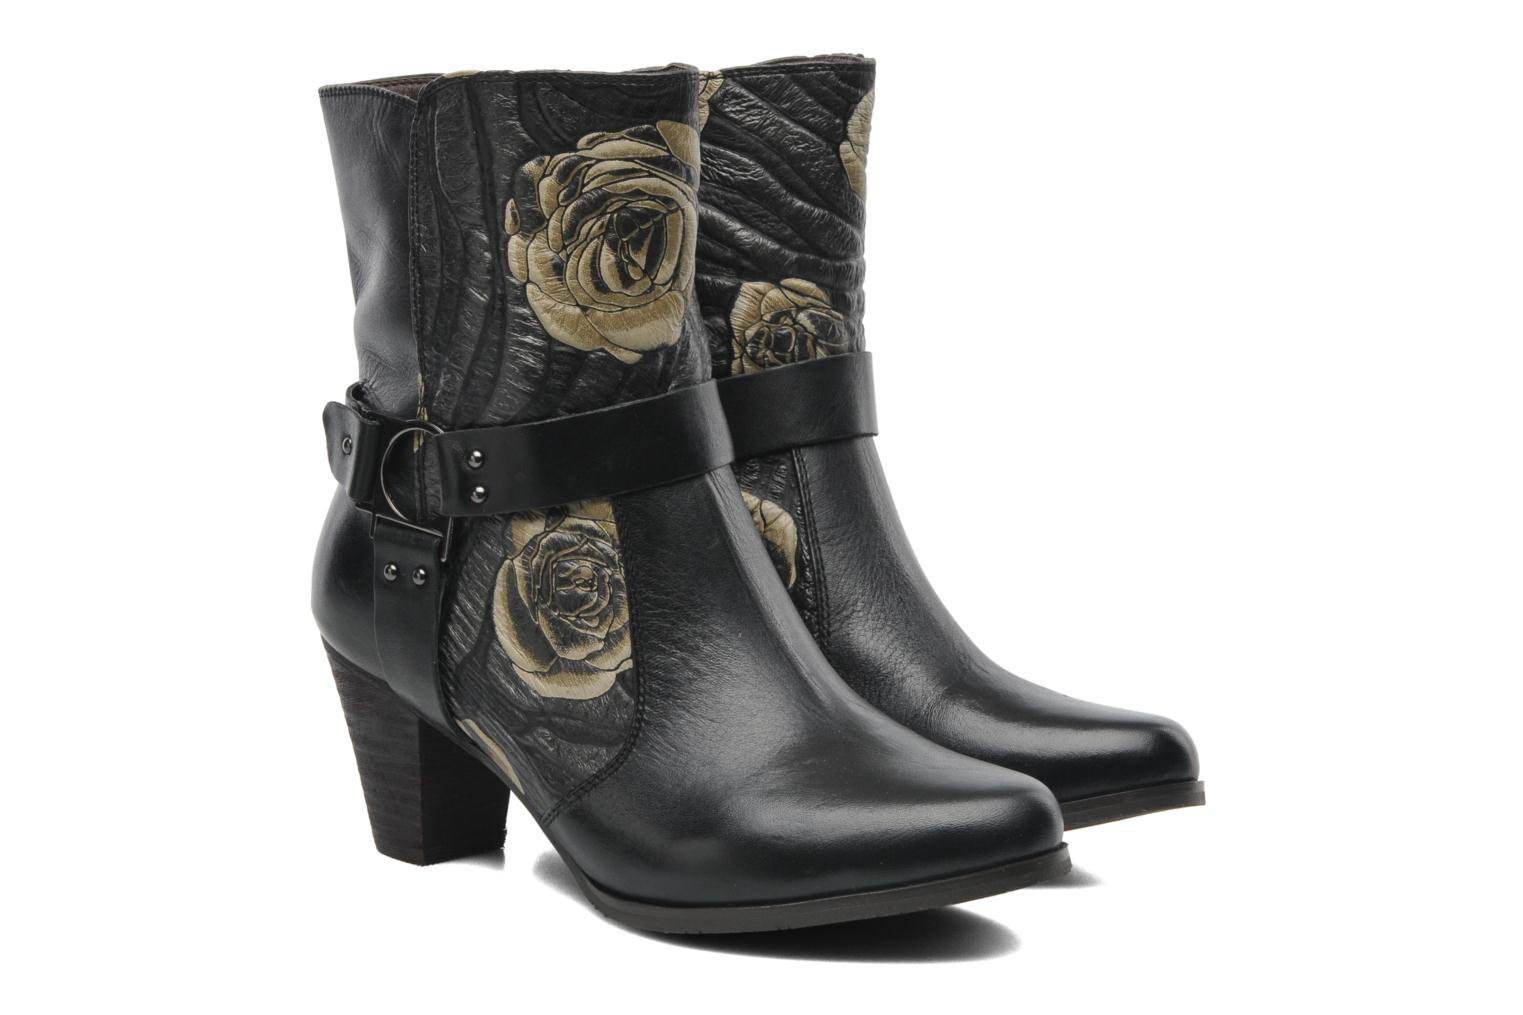 laura vita rapide ankle boots in black at 201293. Black Bedroom Furniture Sets. Home Design Ideas